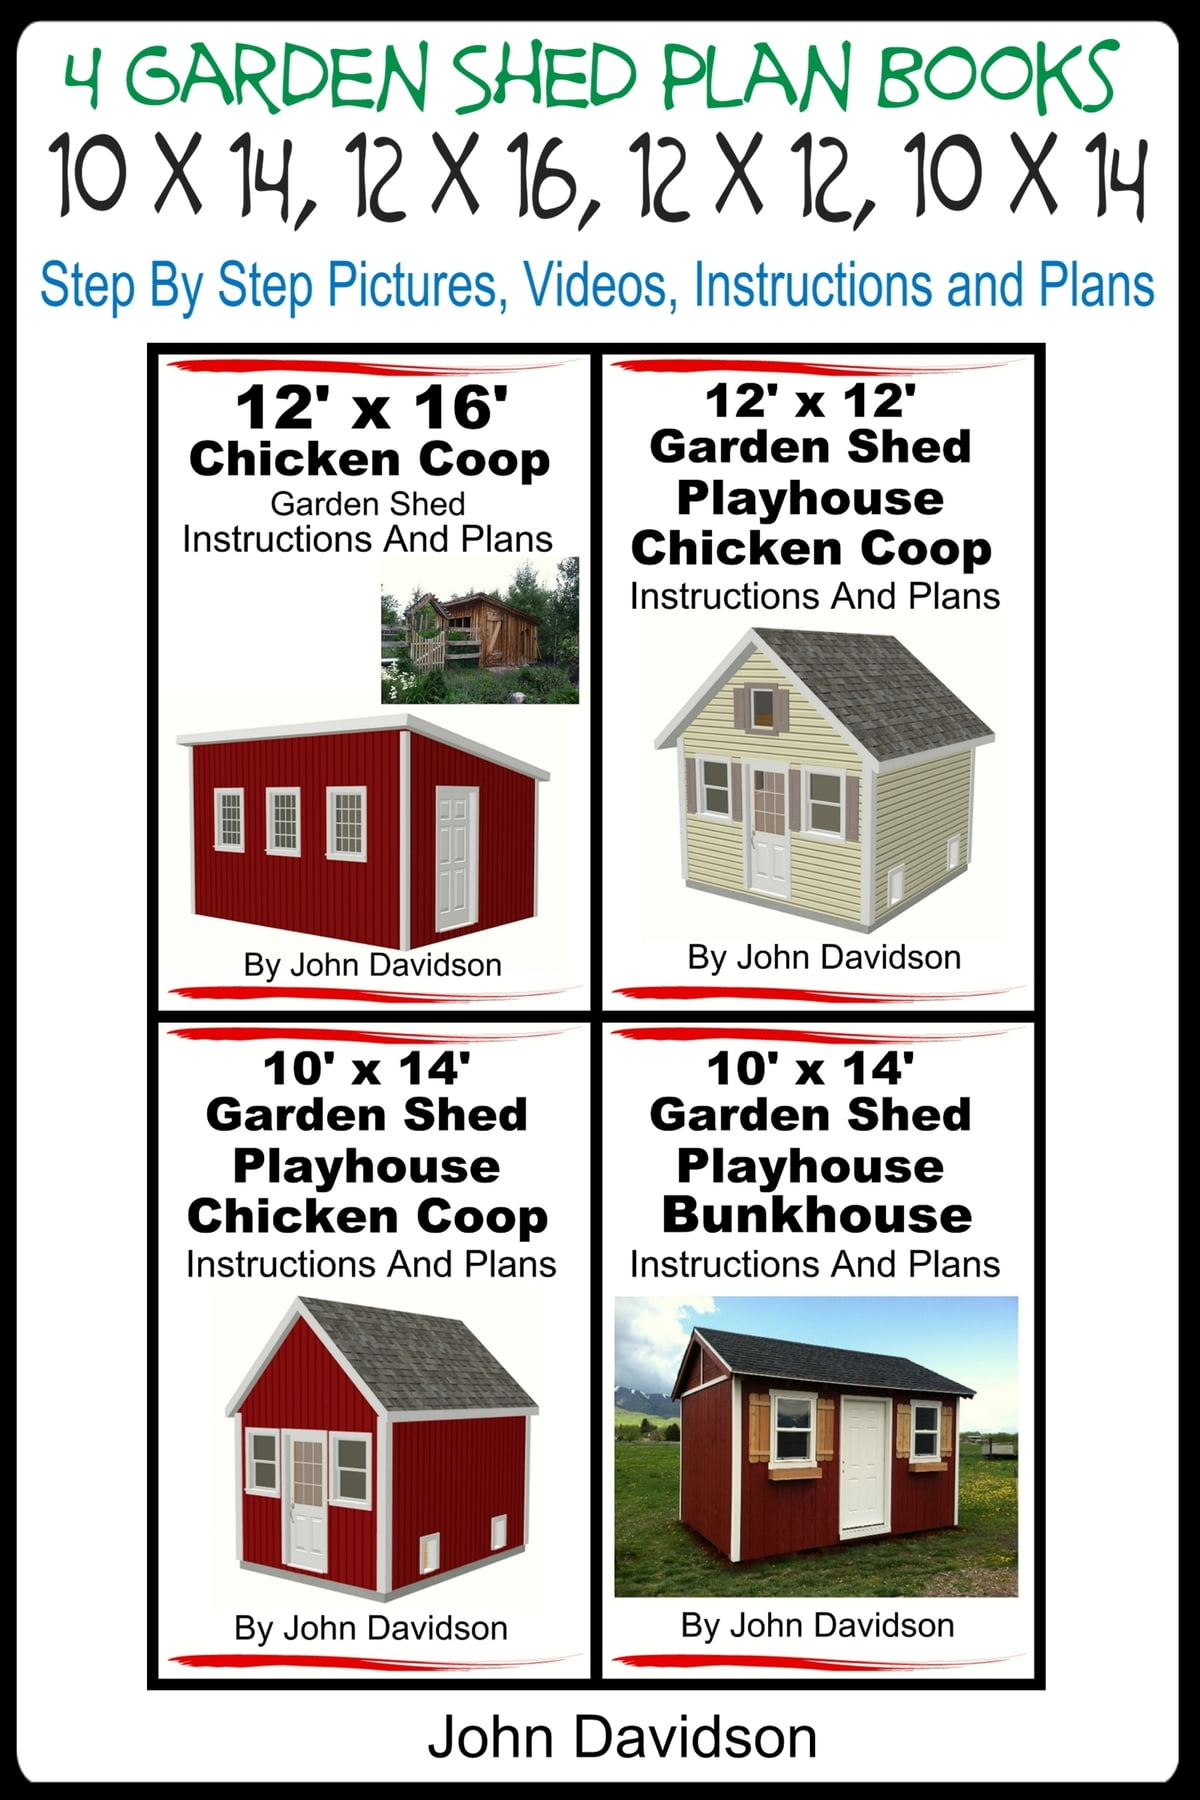 4 Garden Shed Plan Books 10 X 14 12 16 Step By Pictures Videos Instructions And Plans Ebook John Davidson